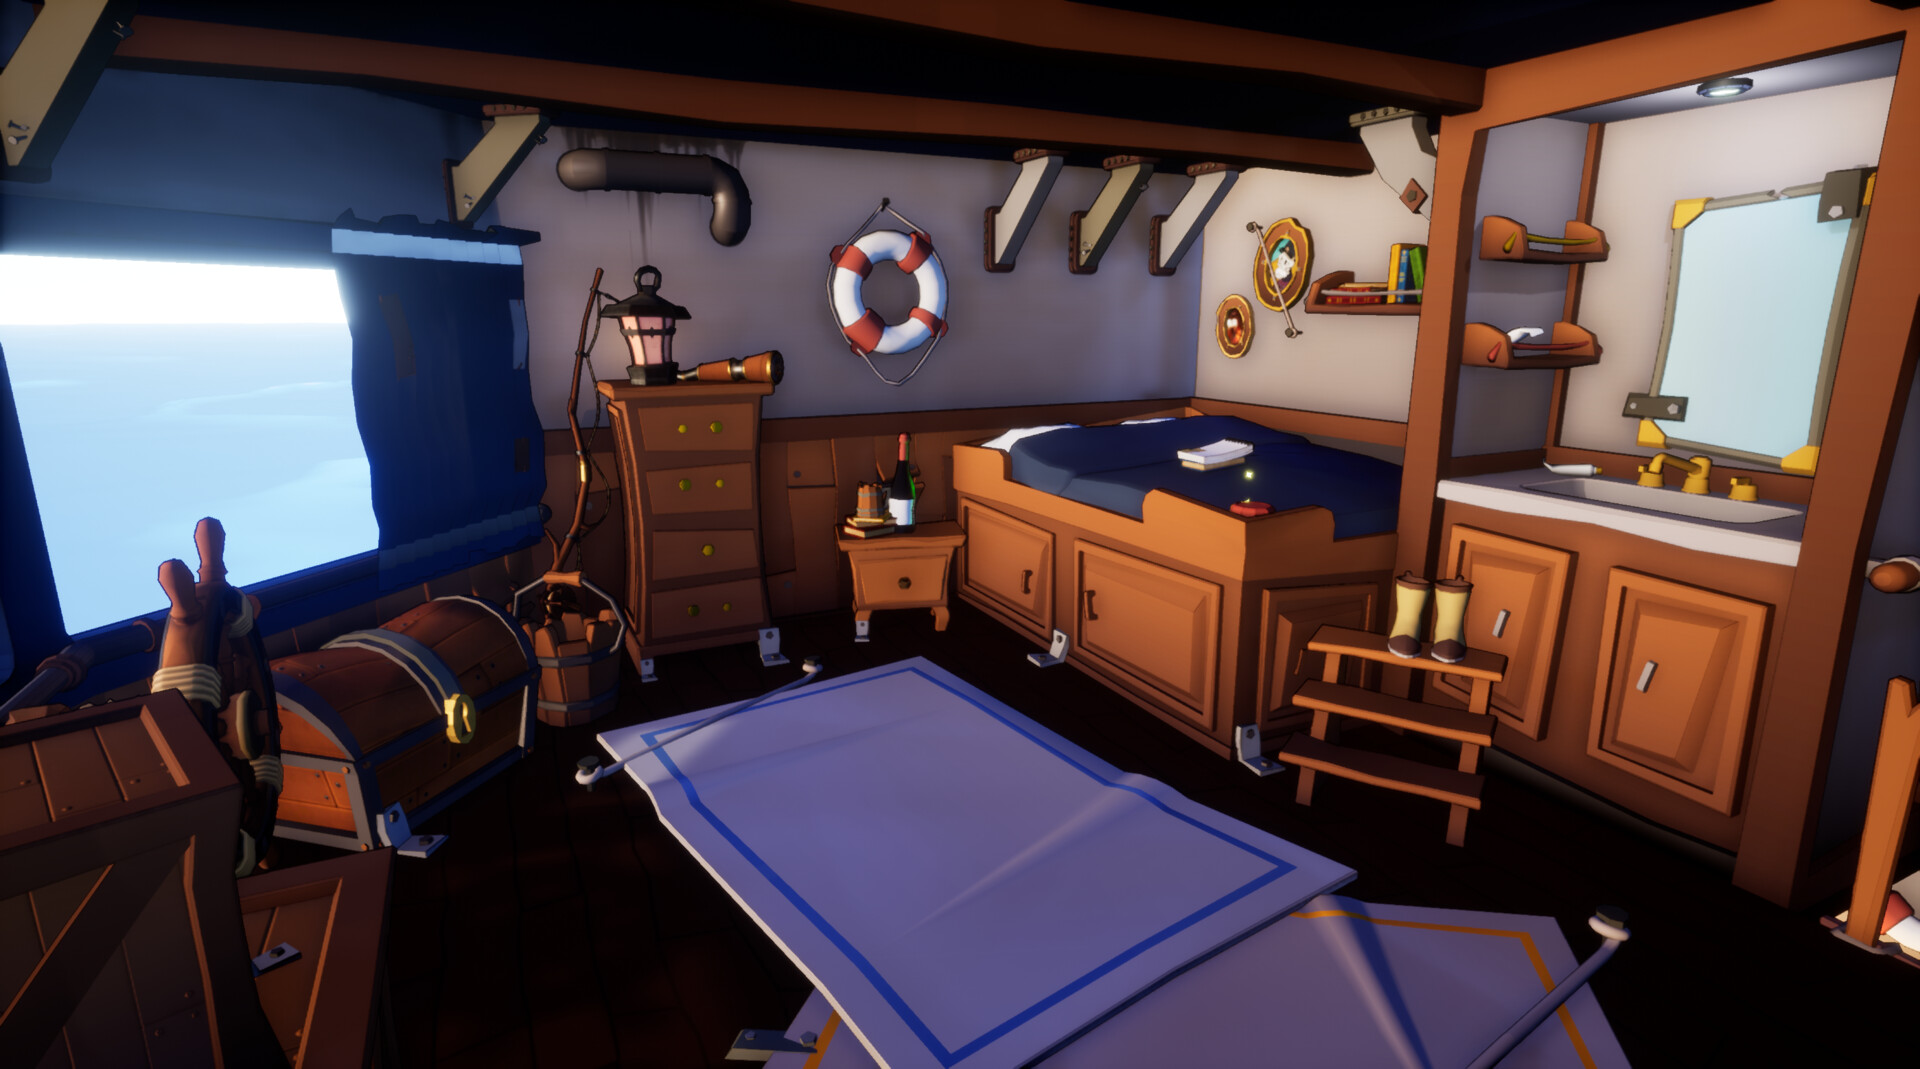 I was partially responsible for creating props and worldbuilding of this cabin. 